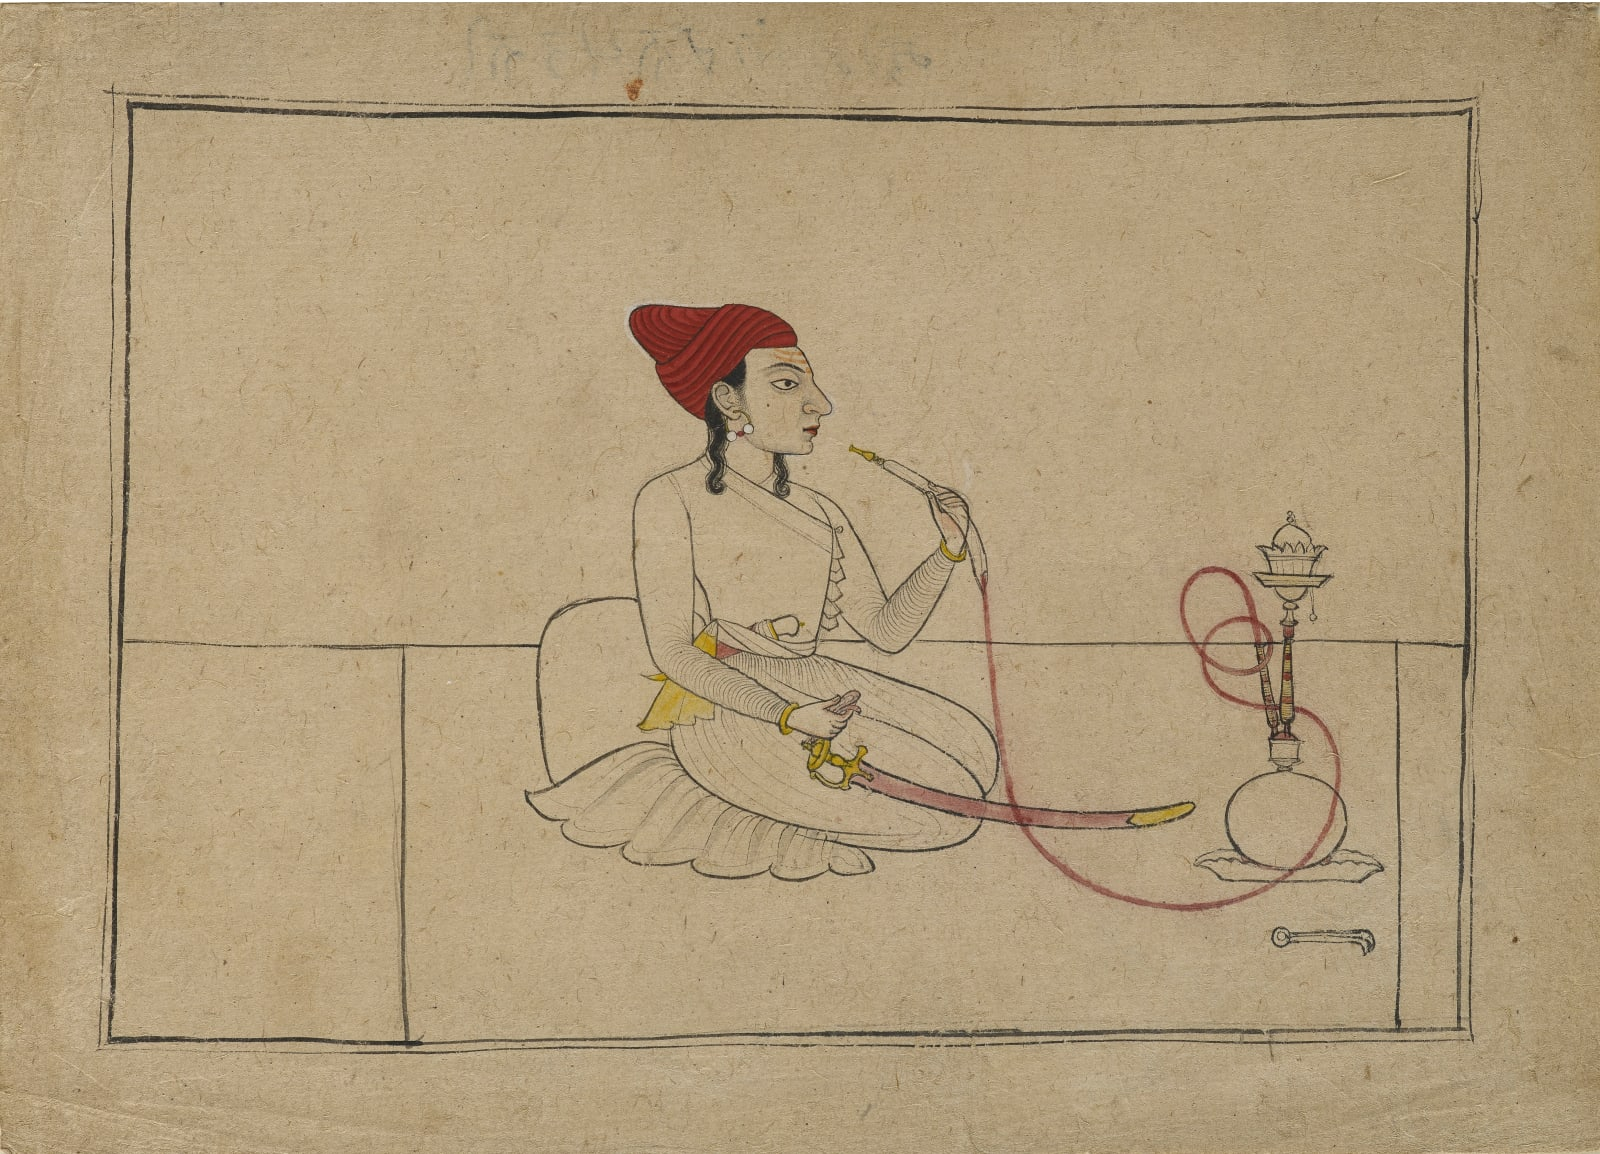 Raja Ajmat Dev of Mankot as a youth, seated smoking a hookah, Mankot, c. 1715